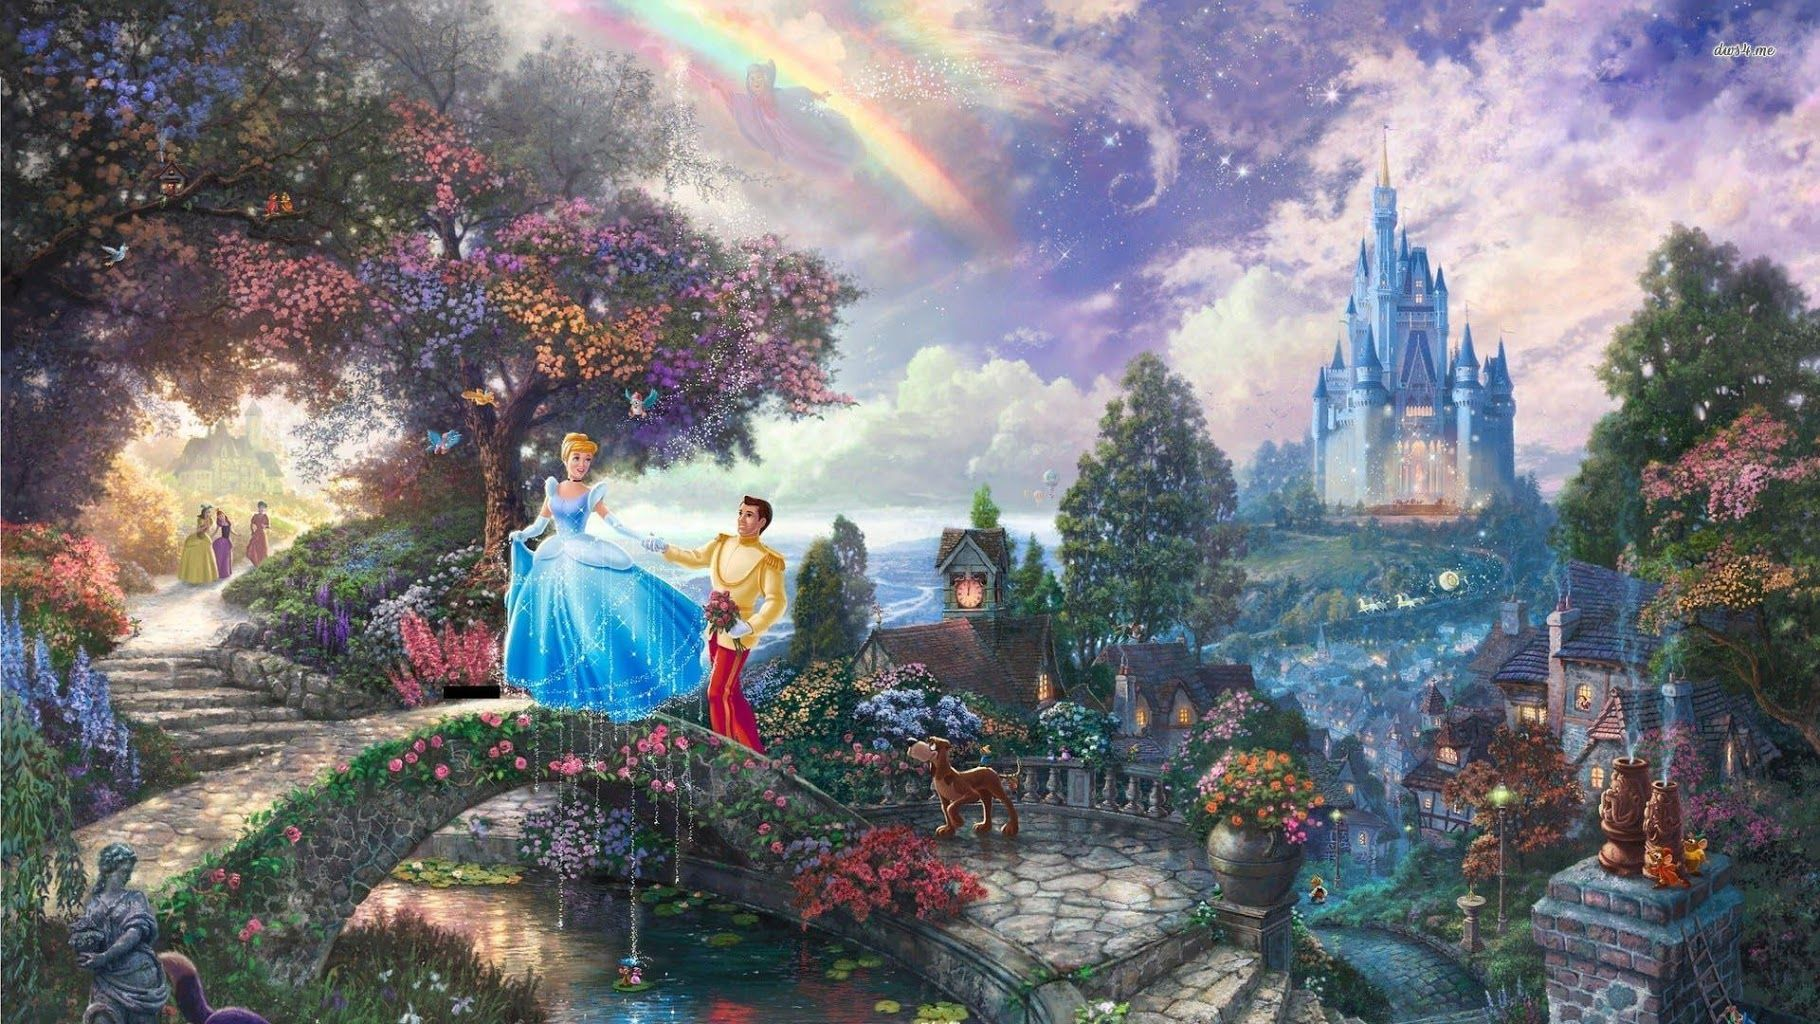 Cool HD Wallpapers Collection of Cinderella - 1820x1024, 08.17.13